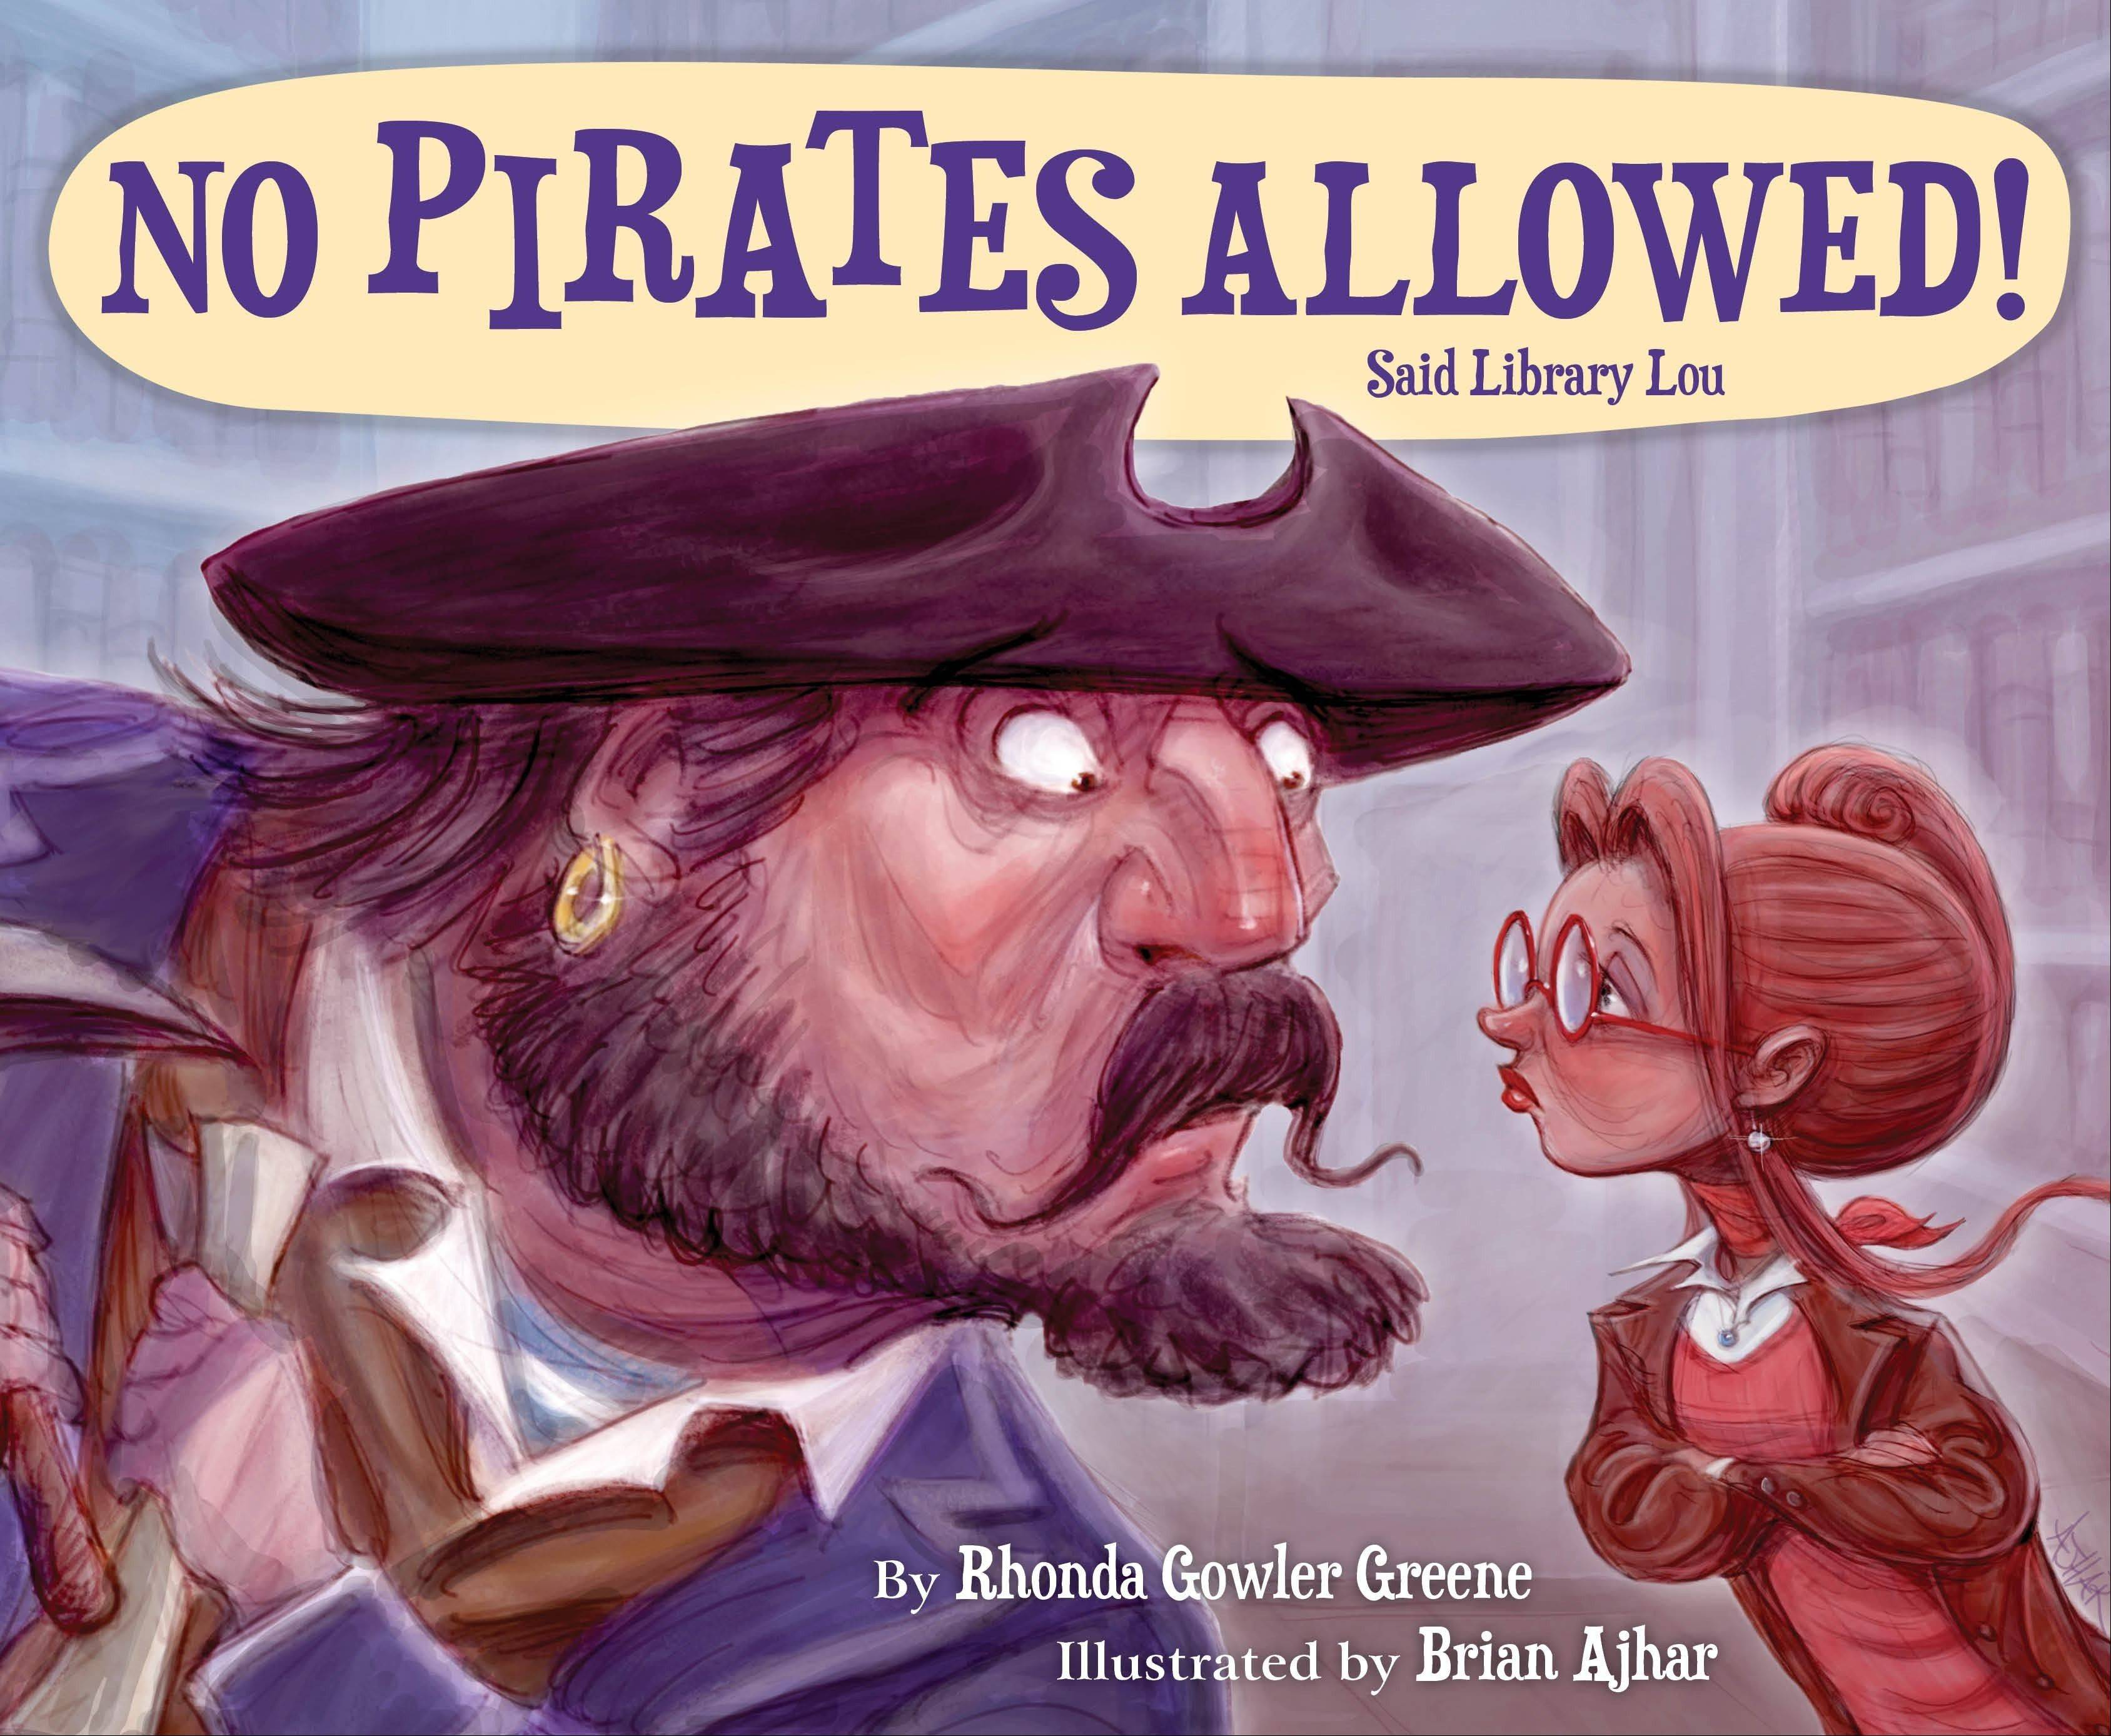 """NO PIRATES ALLOWED! Said Library Lou� by Rhonda Gowler Greene, illustrated by Brian Ajhar (Sleeping Bear Press 2013), $15.95, 40 pages."